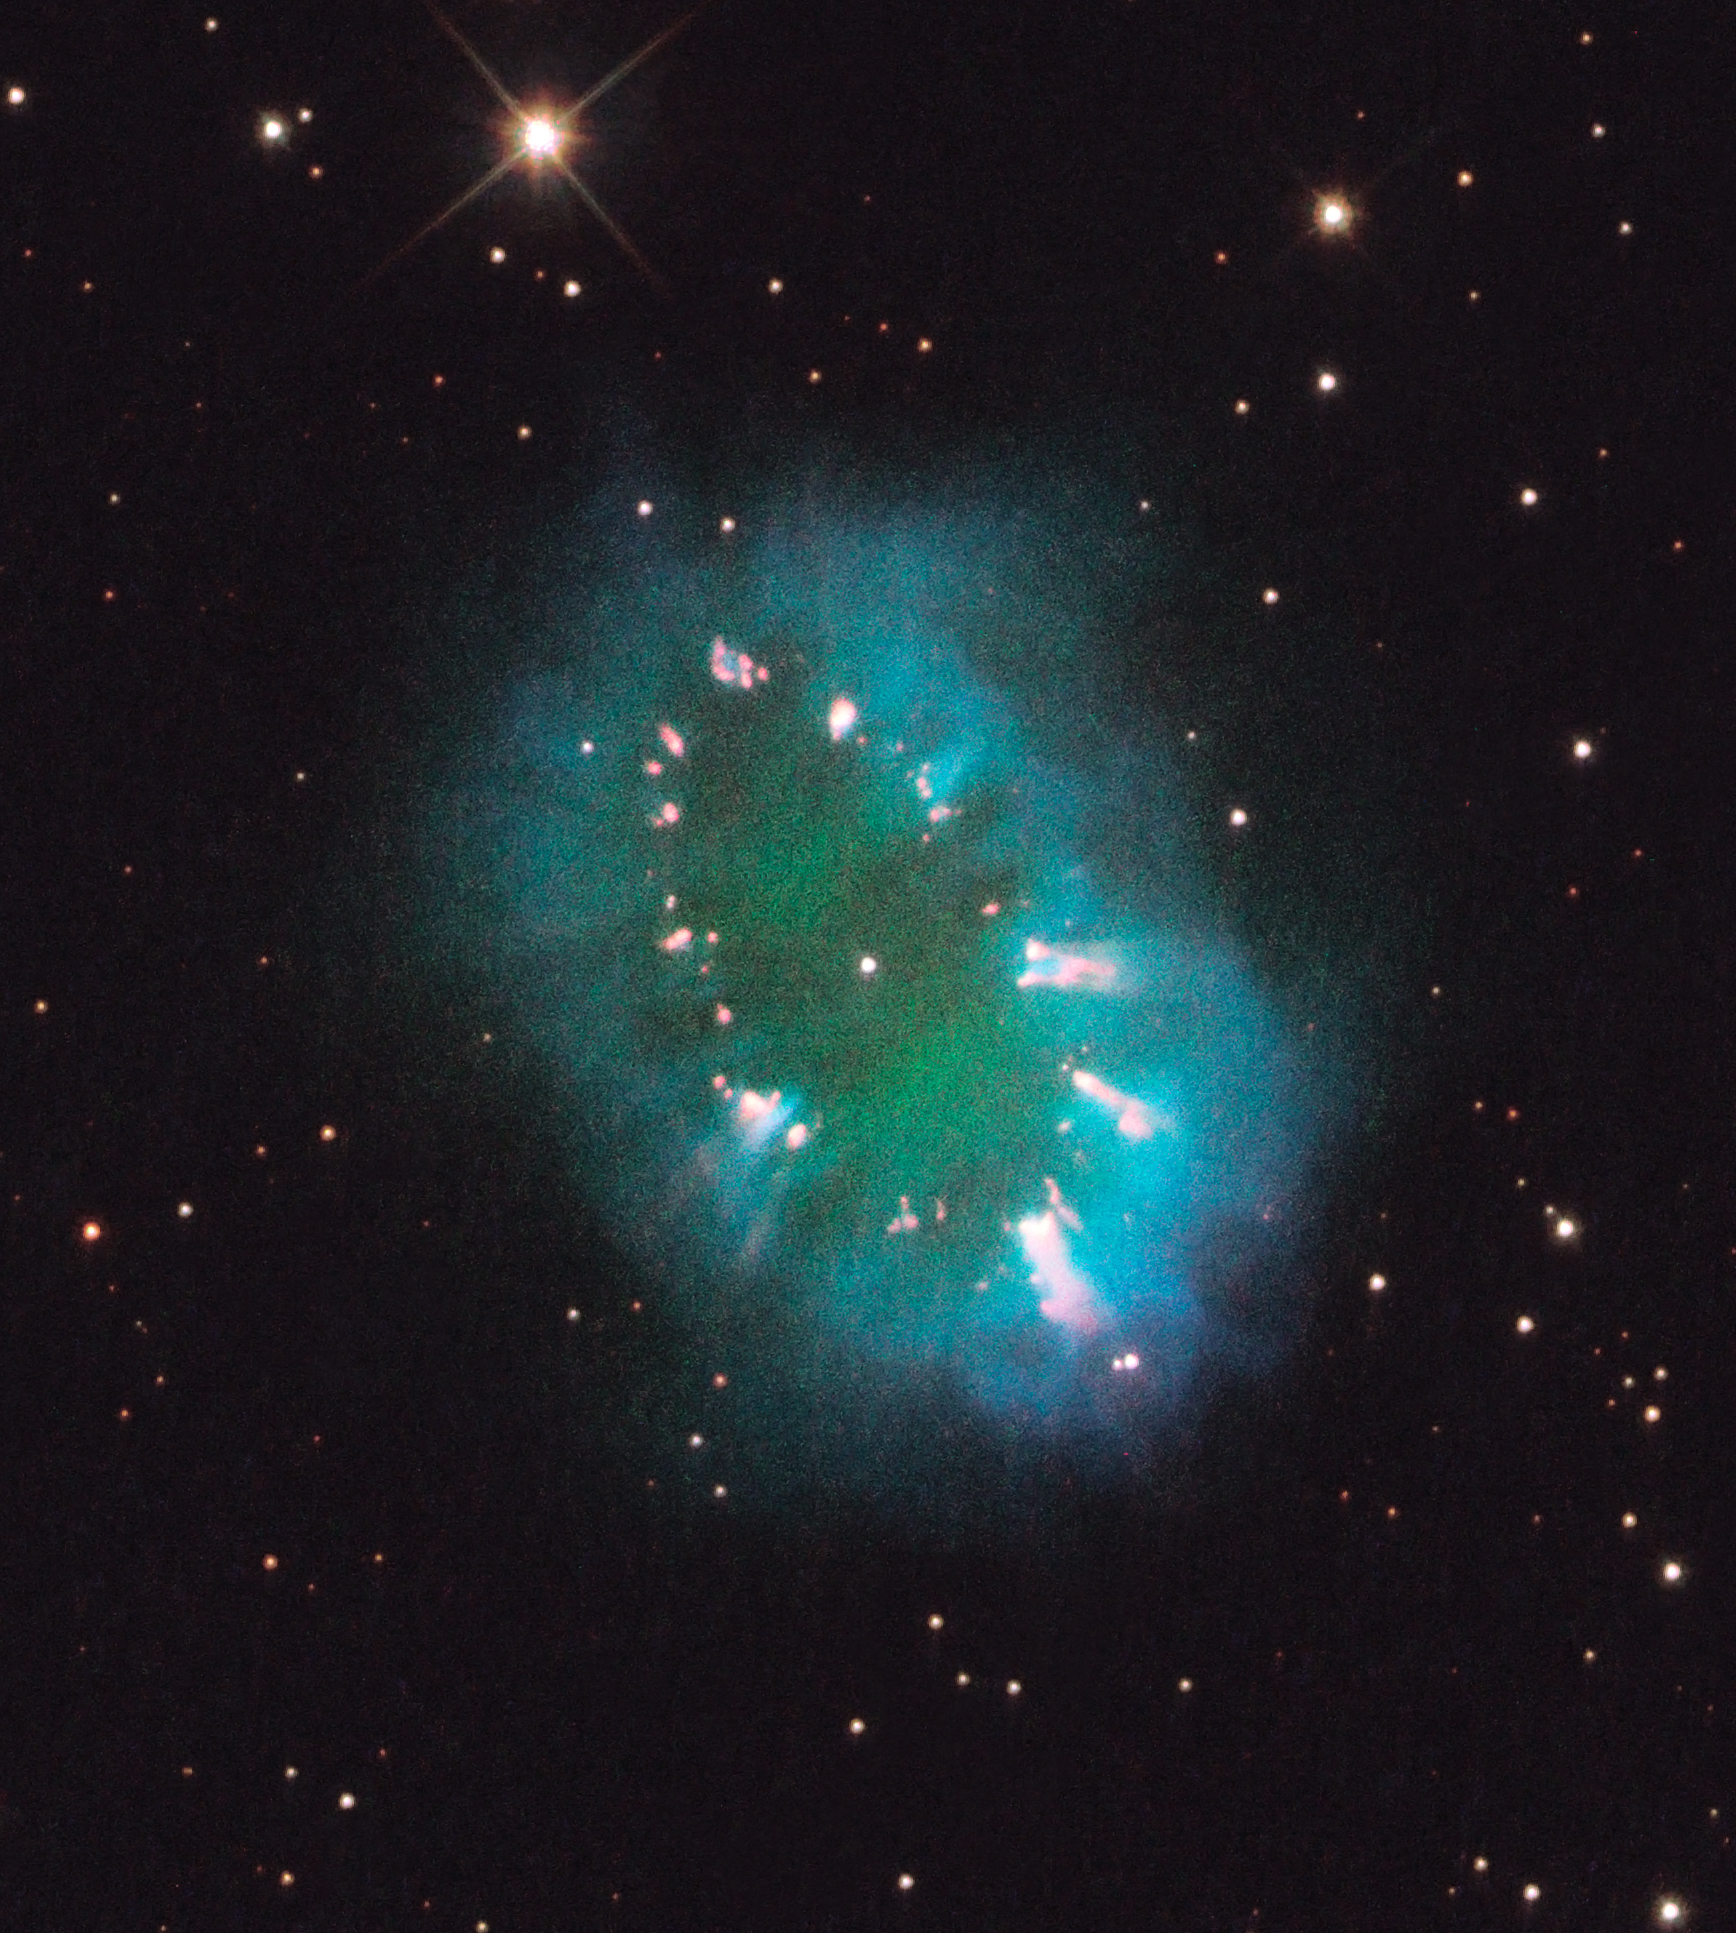 Hubble Telescope Finds Glowing 'Necklace' in Space